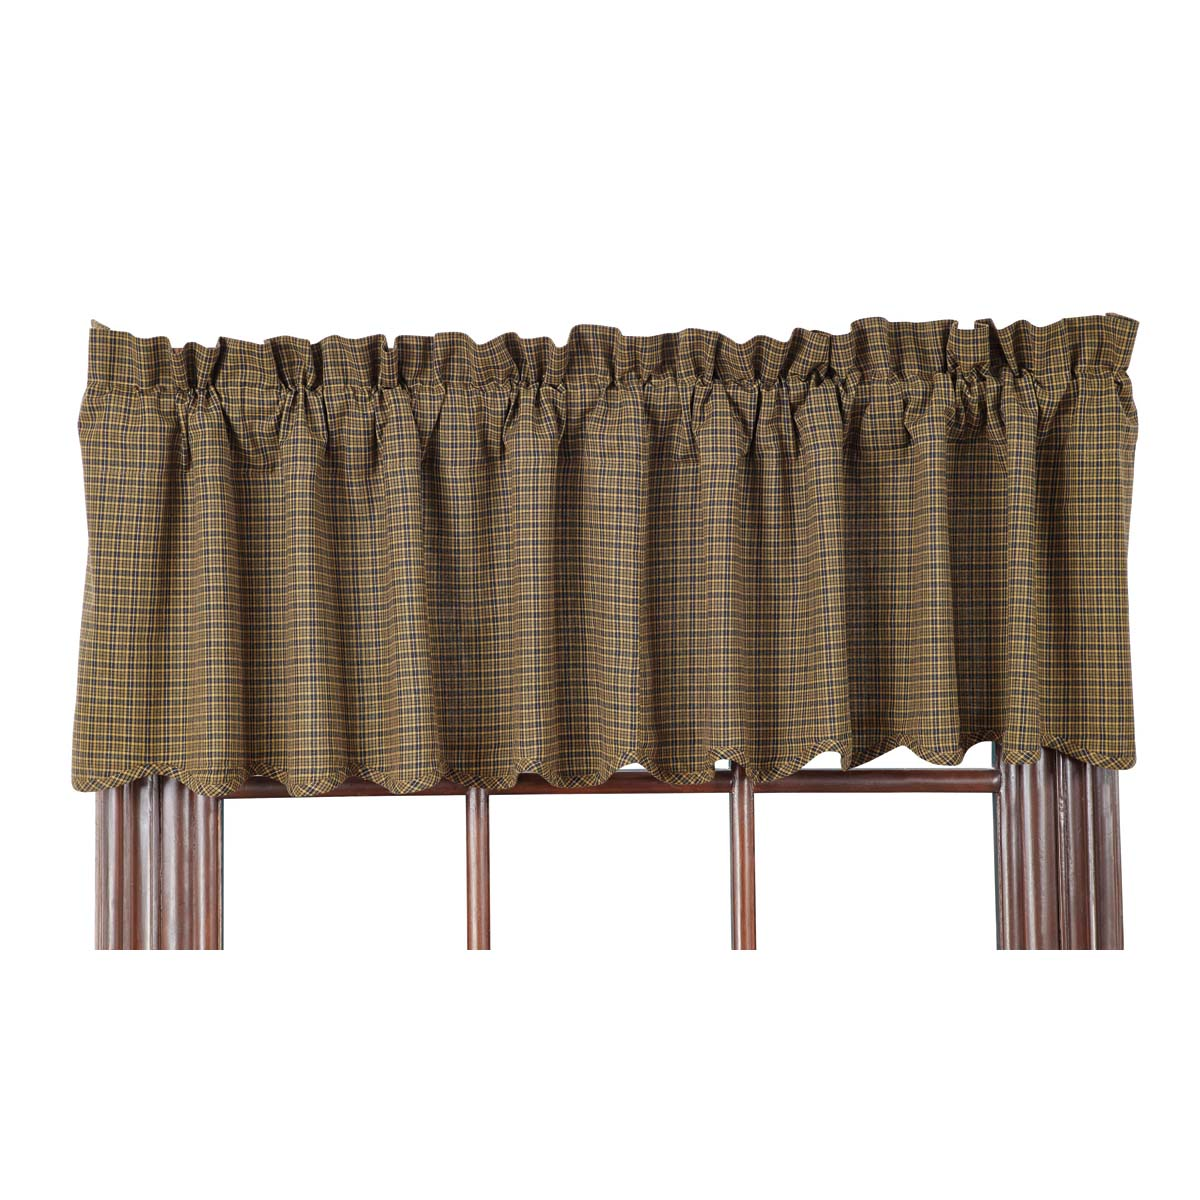 Tea Cabin Green Plaid Valance 16x72 - Woodrol